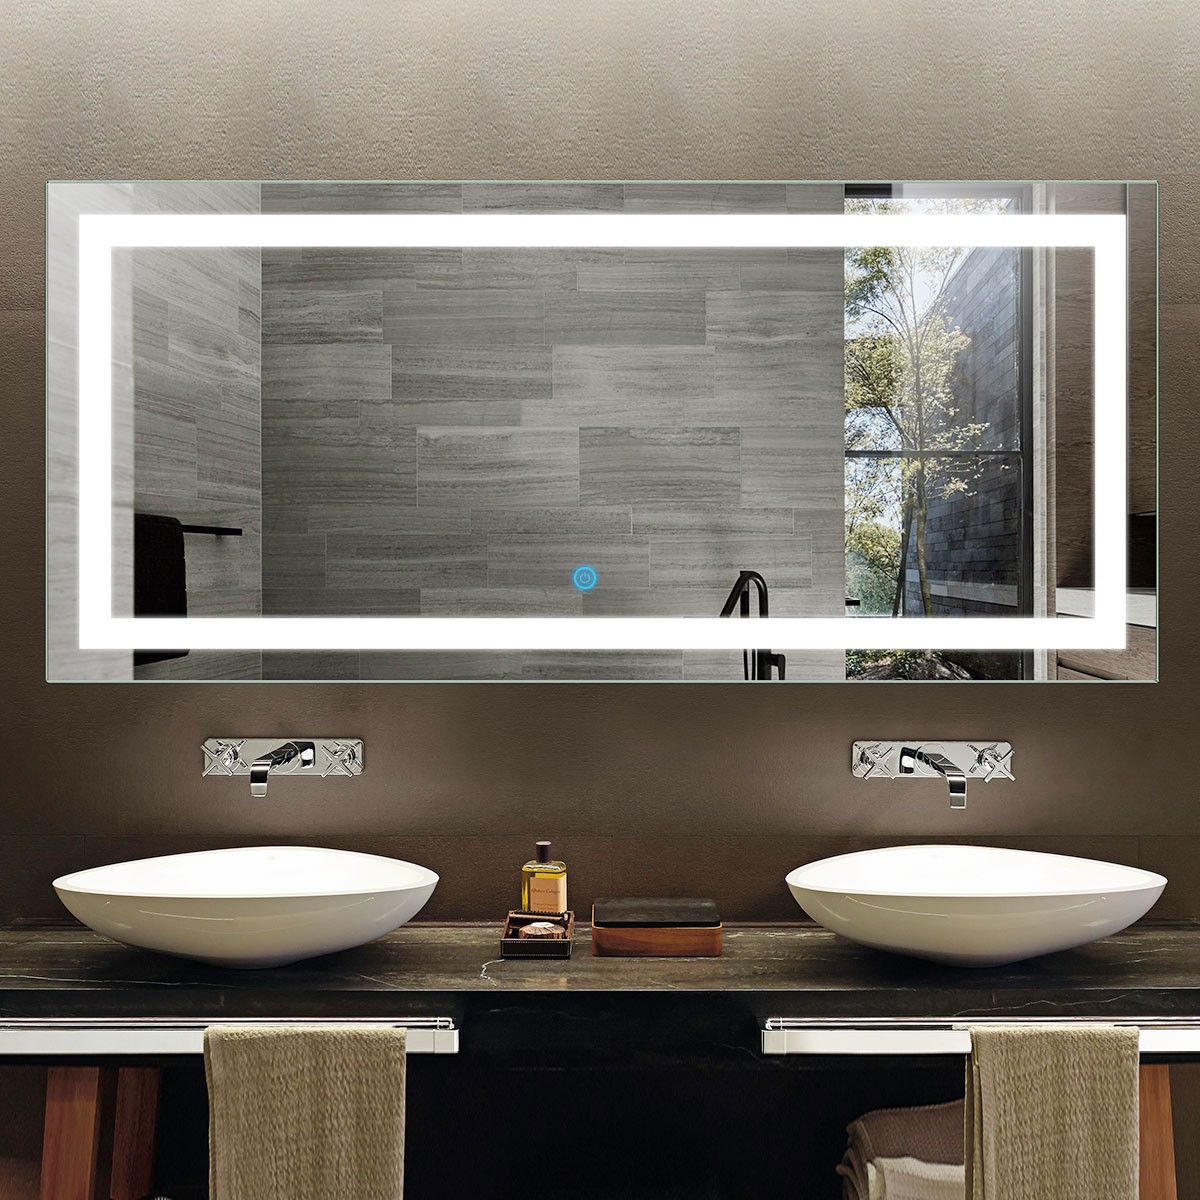 70 x 32 In Horizontal LED Bathroom Mirror with Touch Button (DK-OD-CK010-A)